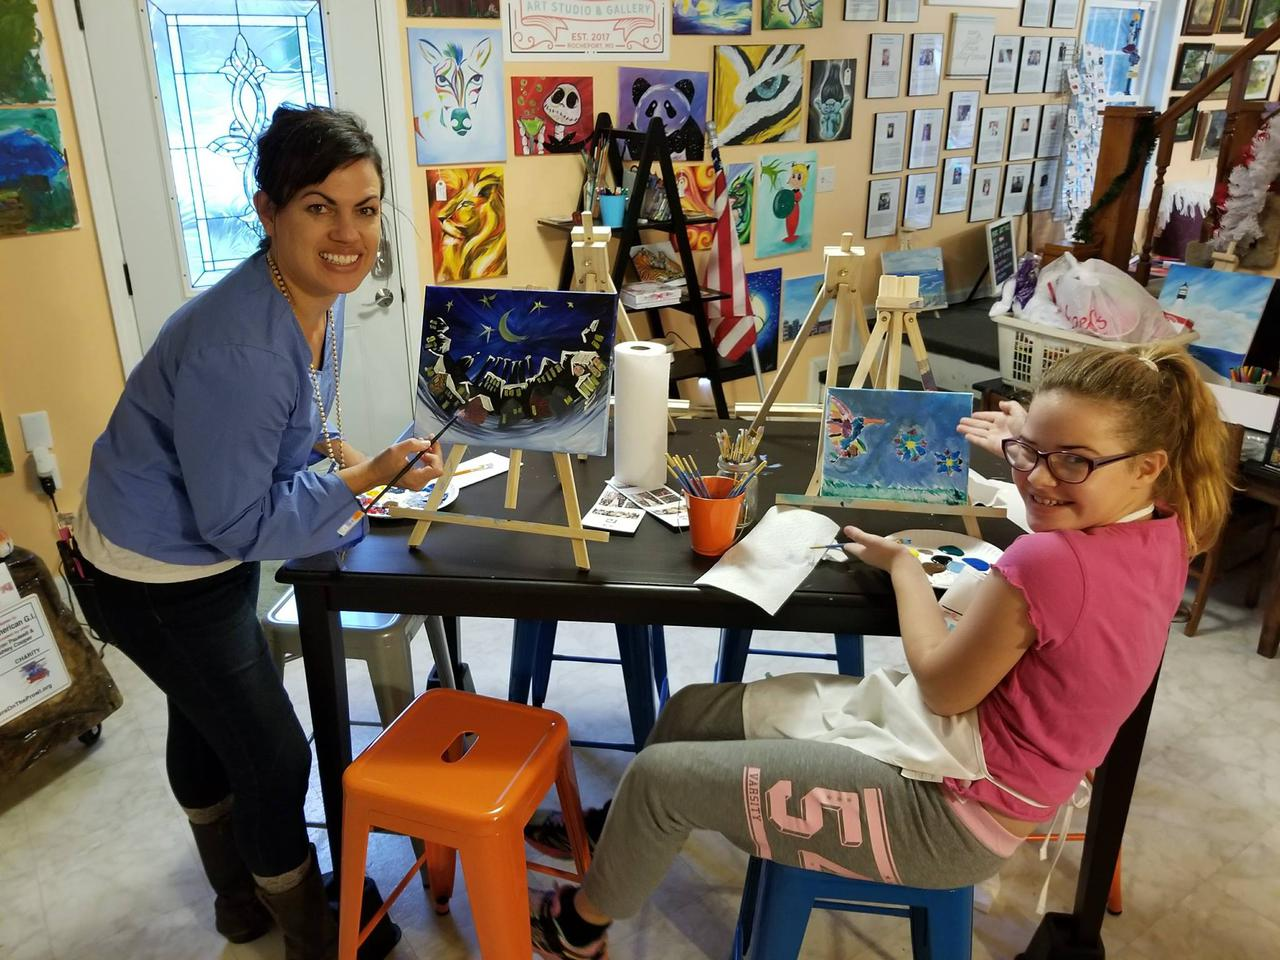 Offer opportunities to learn from local artists